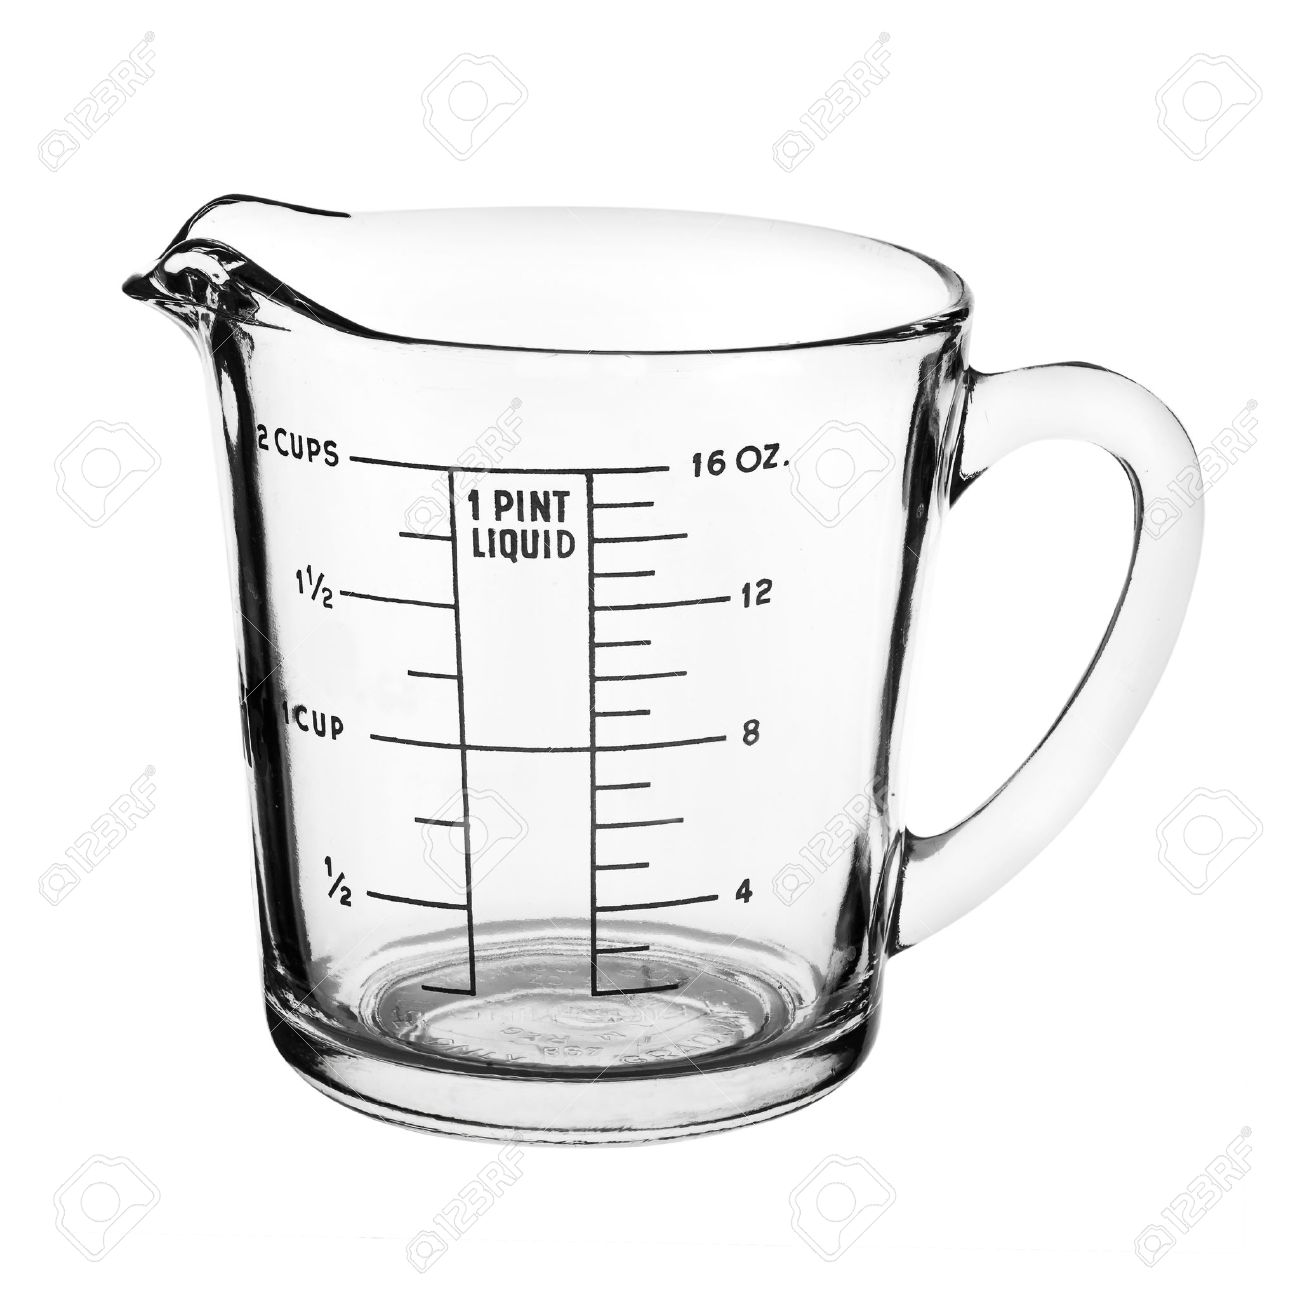 Measuring cup isolated on white background - 41798923